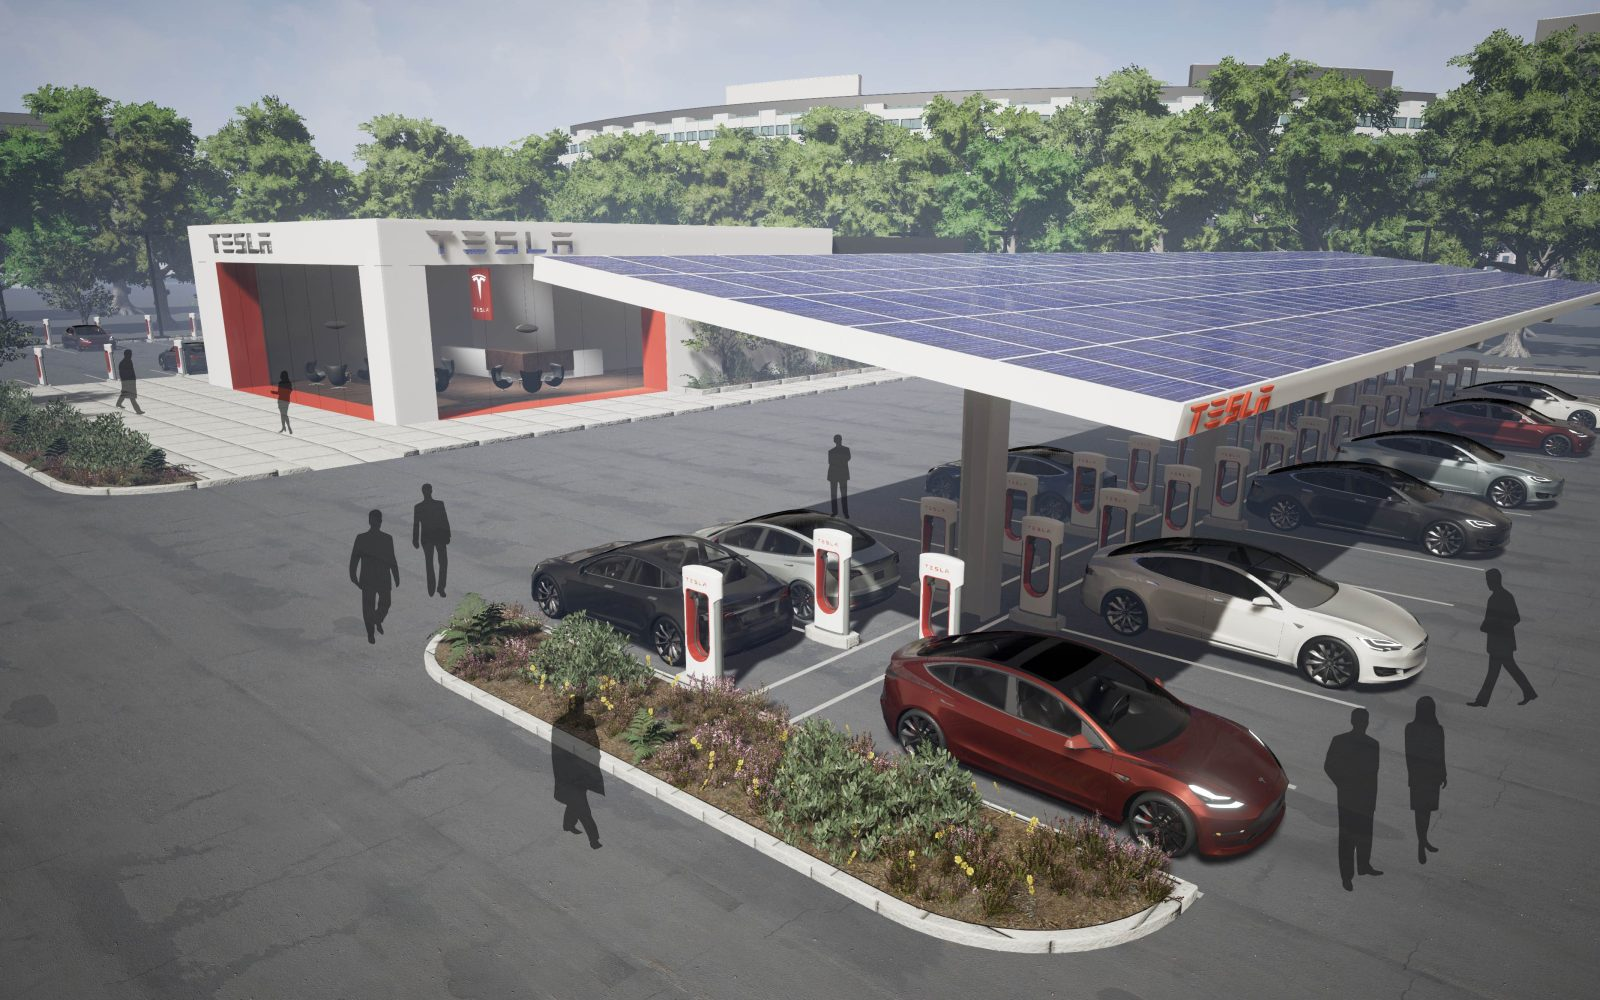 Tesla announces new Supercharger stations with 'several dozen' chargers ahead of Model 3 launch